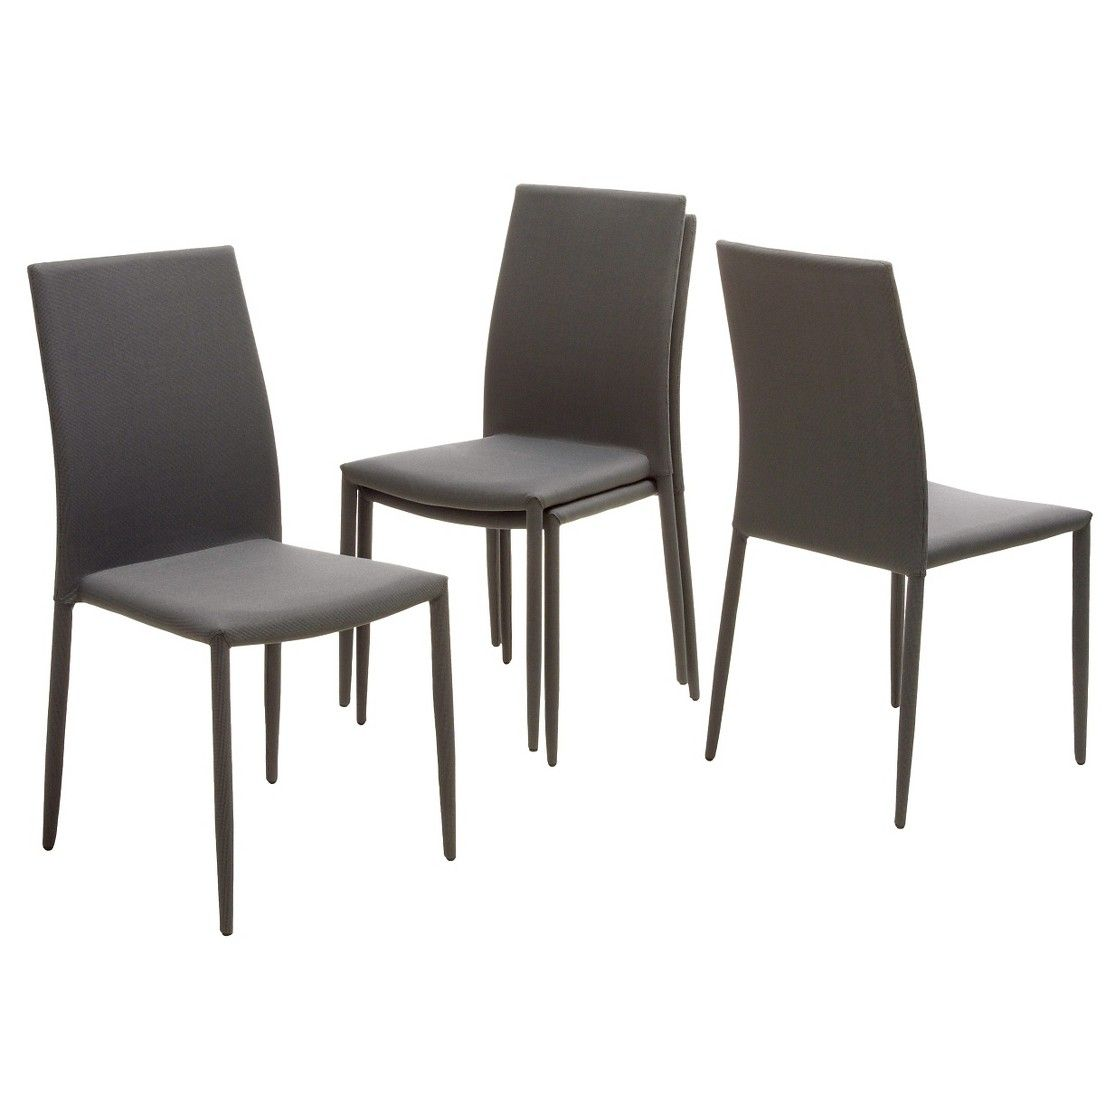 Christopher knight home wayfield dining chair charcoal tweed set of 4